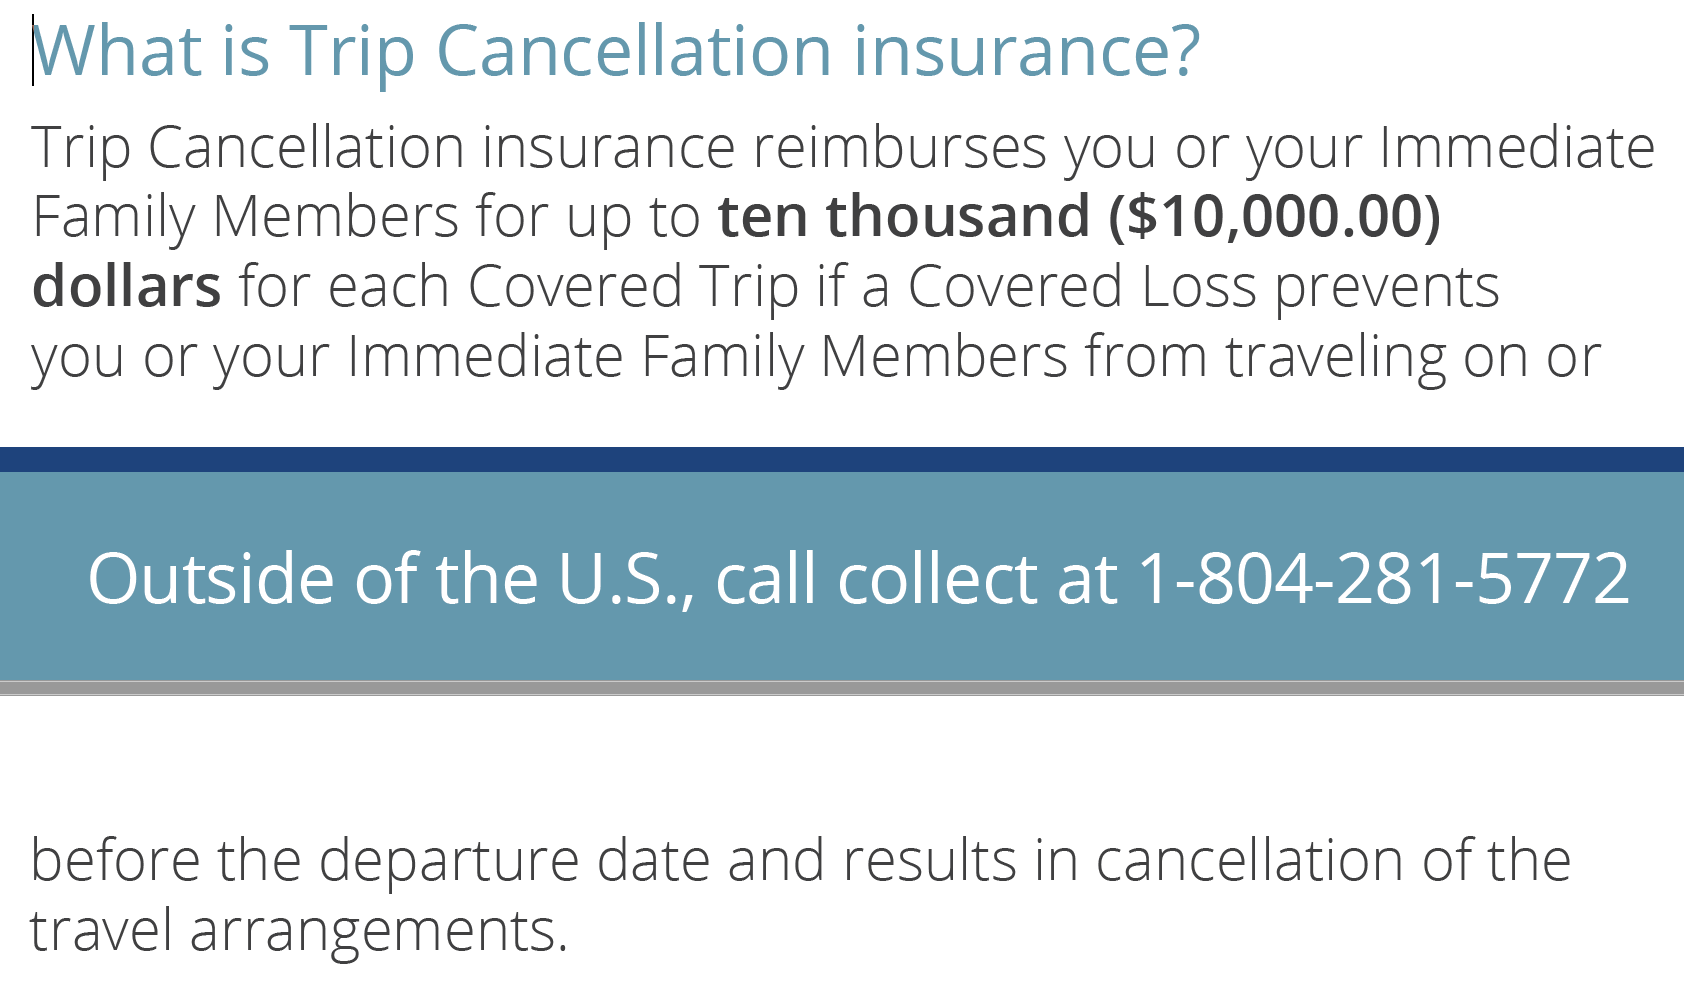 Using Chase Sapphire Reserve Travel Insurance Benefits In Real Life – milenomics